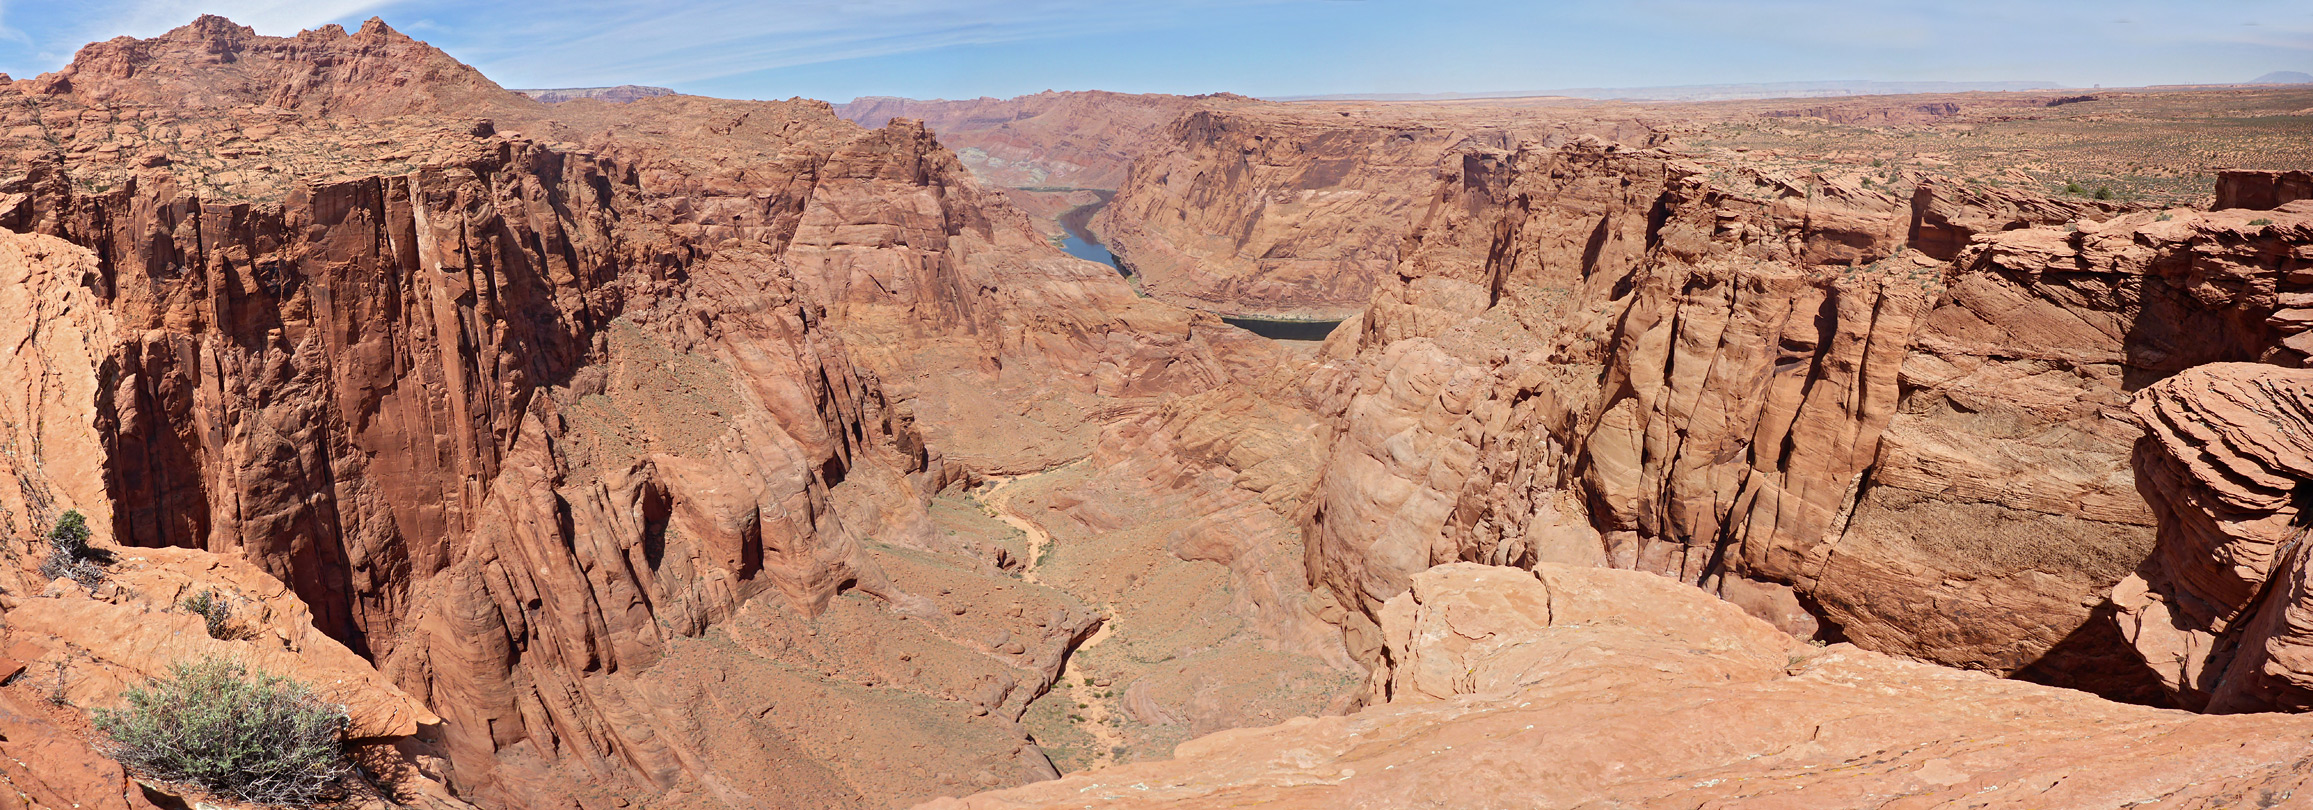 Echo Peaks and the Colorado River